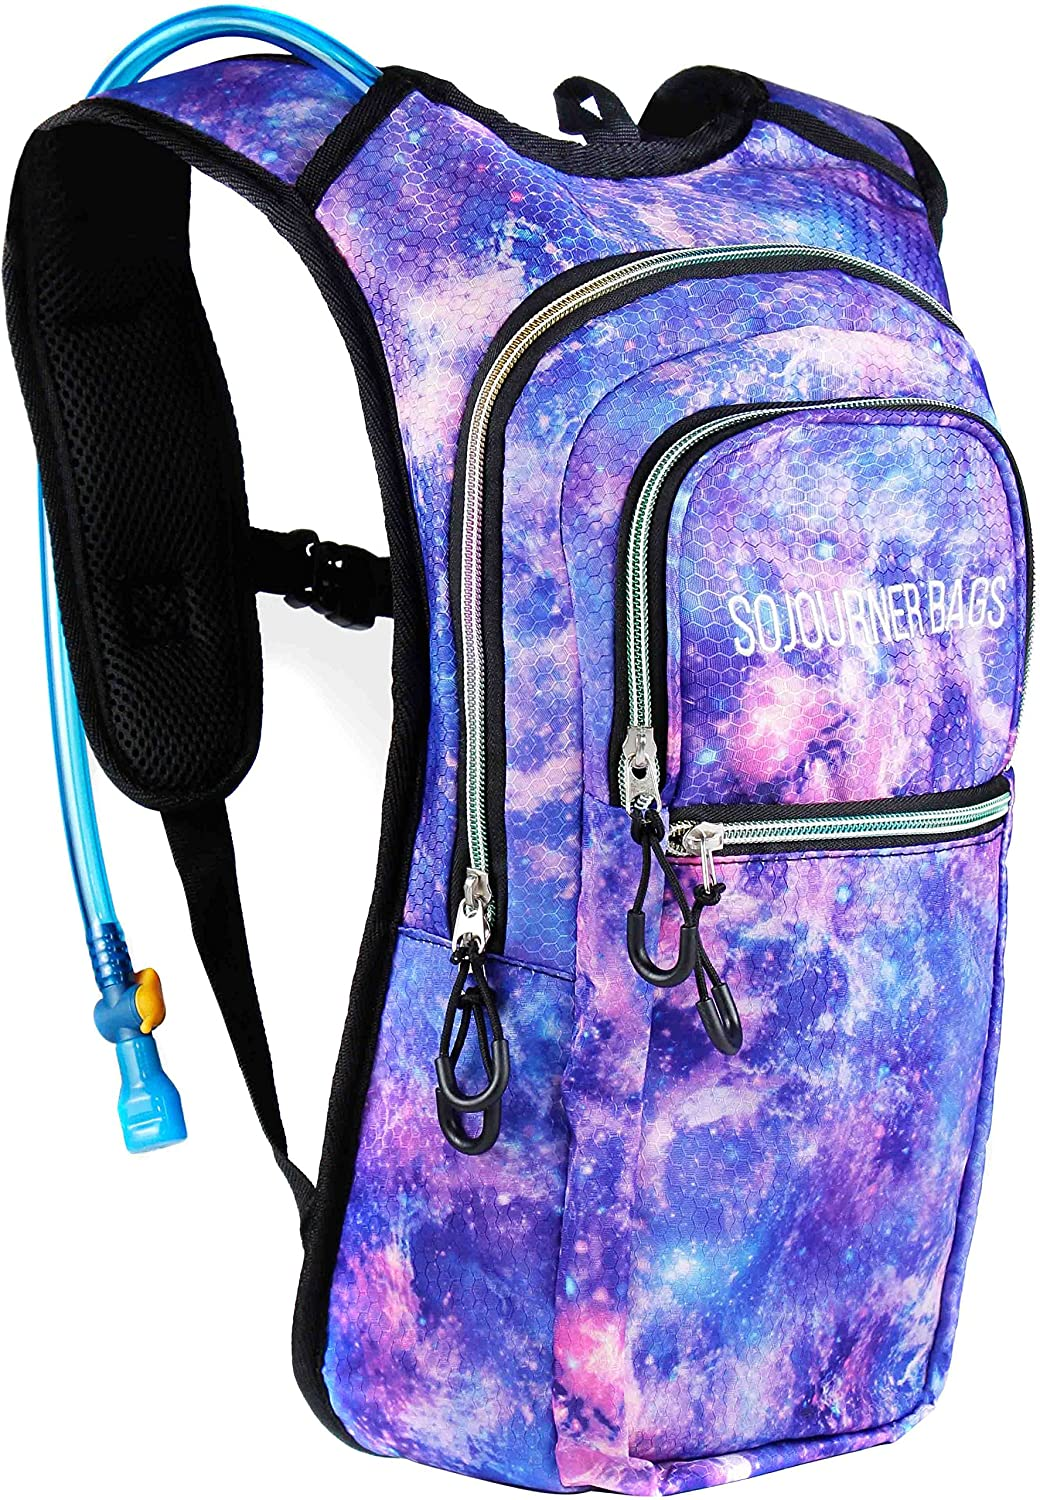 SoJourner Bags Rave Hydration Pack Backpack - 2L Water Bladder Included For  Festivals, Raves, Hiking, Biking, Climbing, Running And More One Size  Galaxy  ... 9971fb5f54